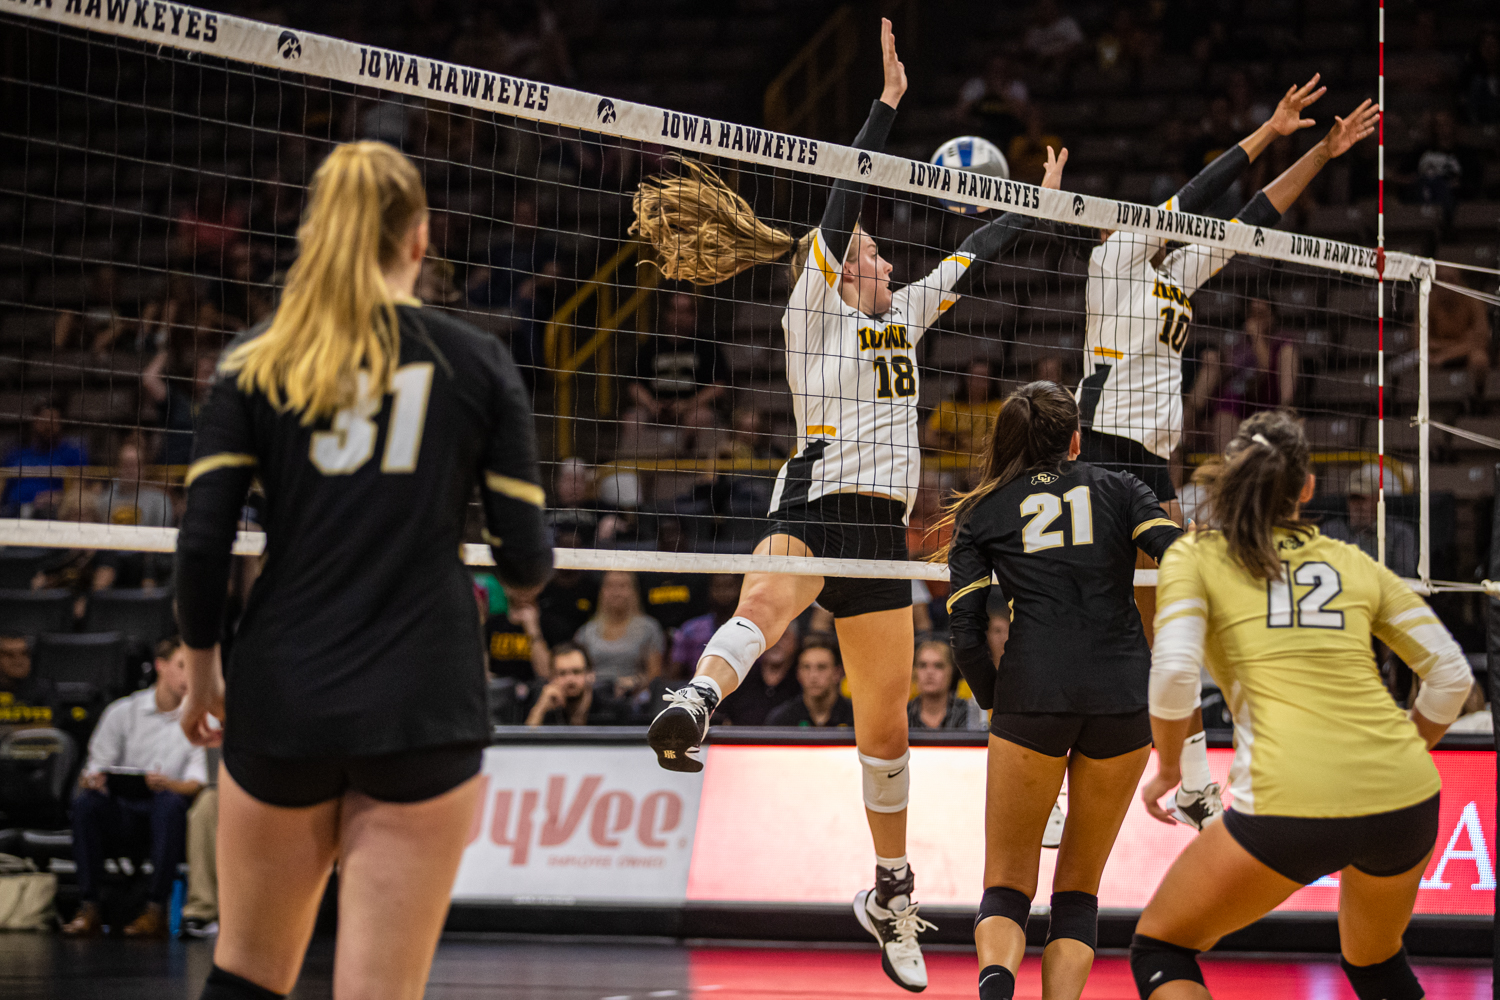 Iowa%27s+Hannah+Clayton+%2818%29+and+Griere+Hughs+go+for+a+block+during+a+volleyball+match+between+Iowa+and+Colorado+in+Carver-Hawkeye+Arena+on+Friday%2C+September+6%2C+2019.+The+Hawkeyes+dropped+their+season+opener+to+the+Buffaloes%2C+3-0.